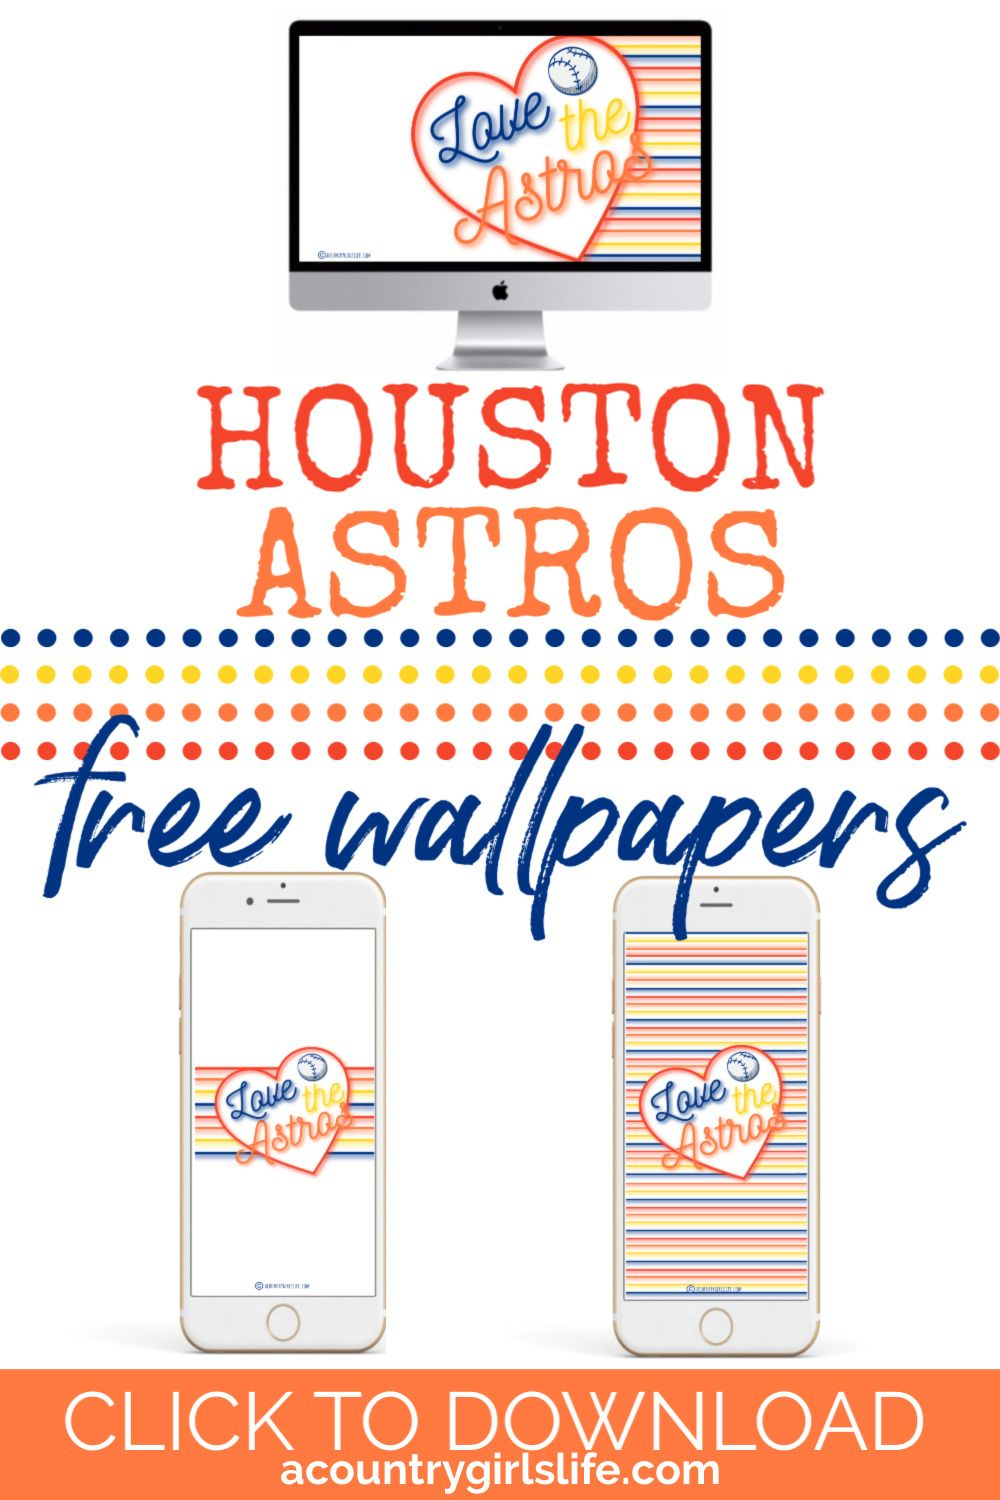 Cute, Feminine 2019 Houston Astros Wallpaper for iPhone